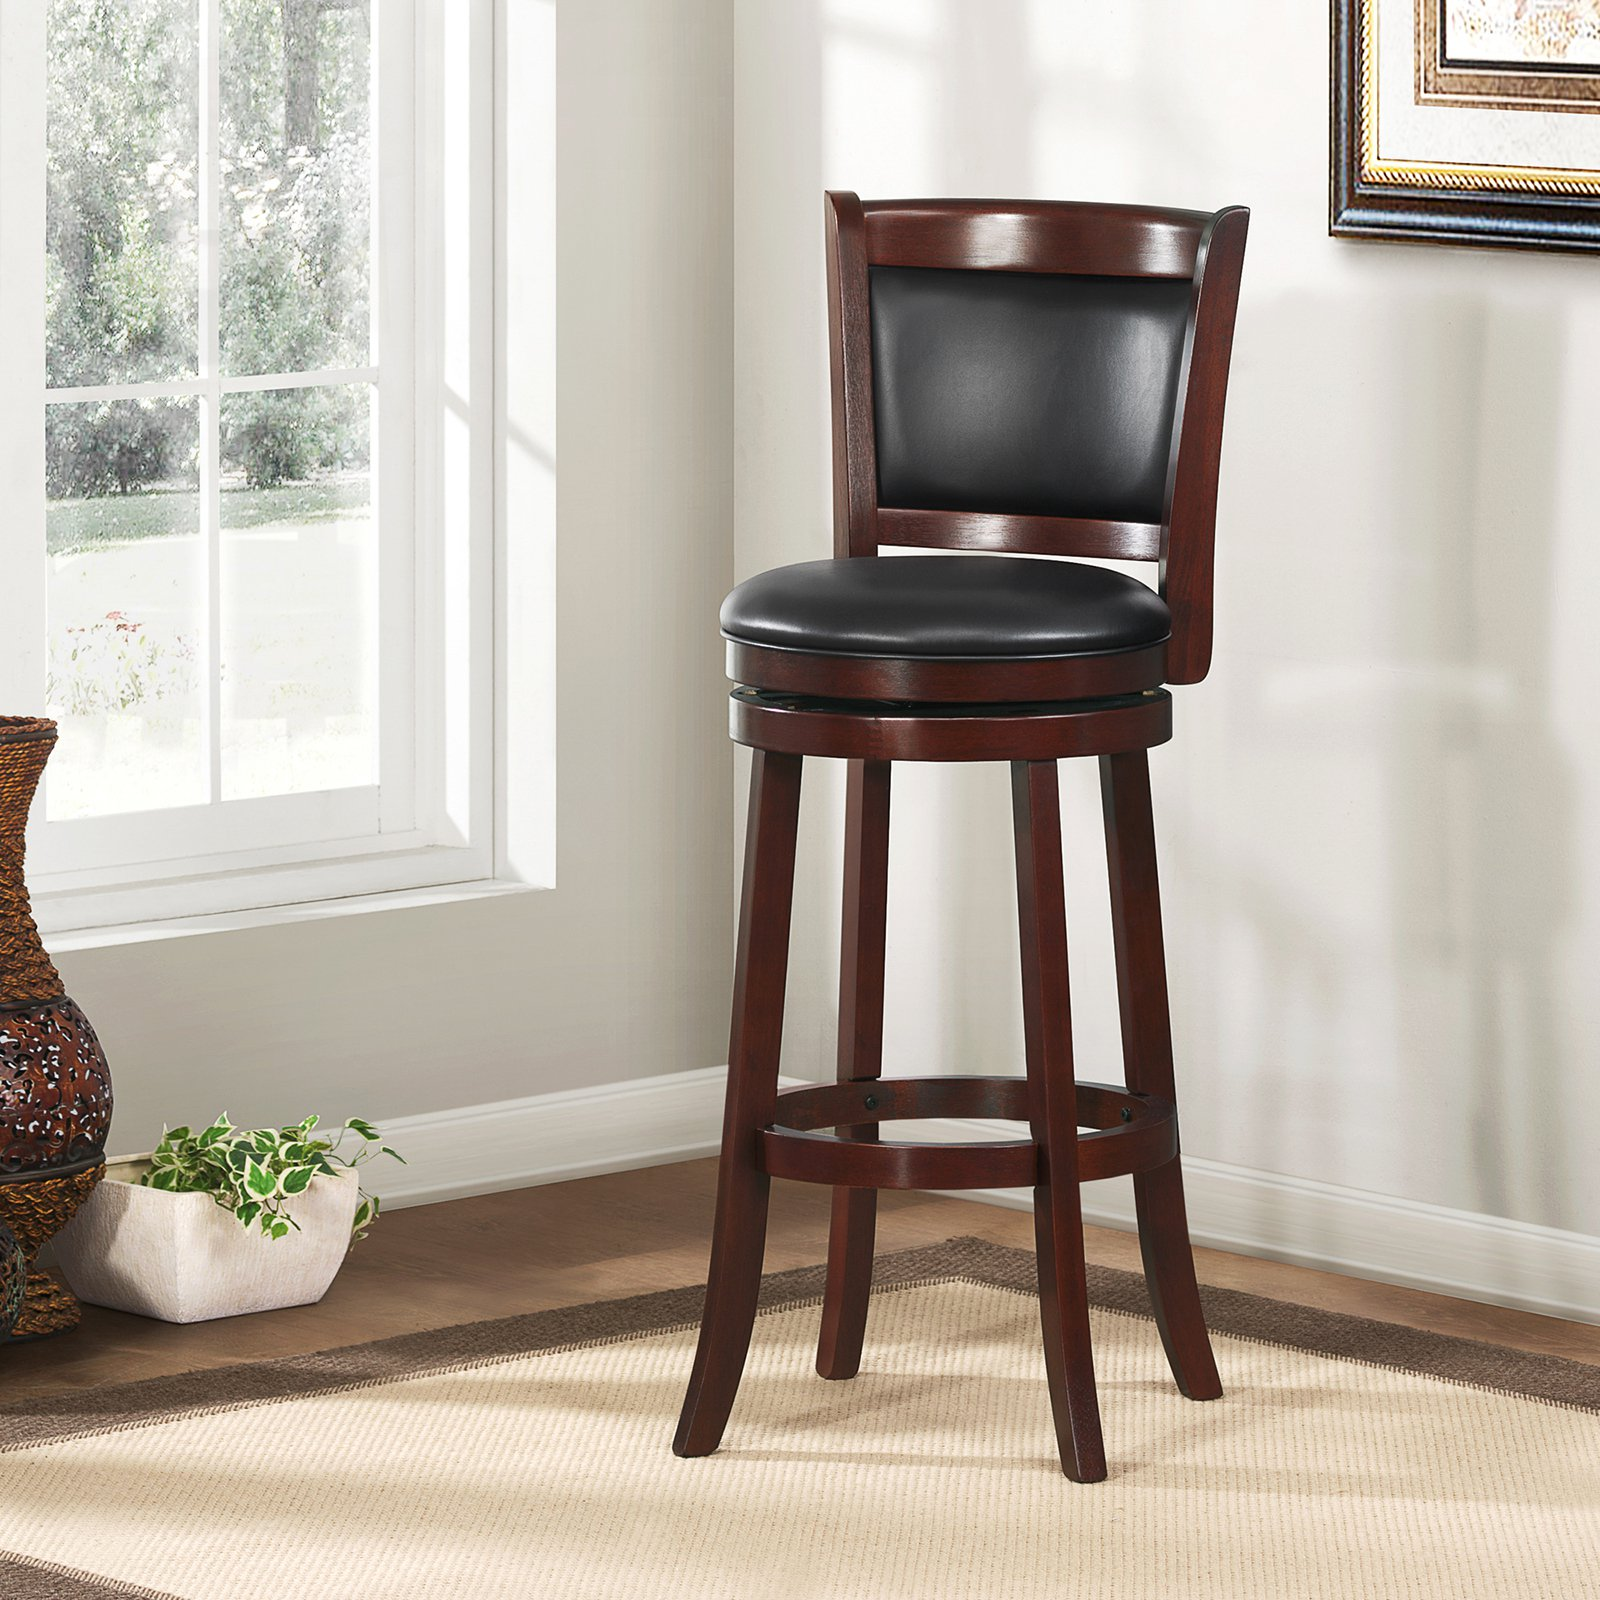 Weston Home Shapel 29 Swivel Cushion Back Bar Stool With Faux